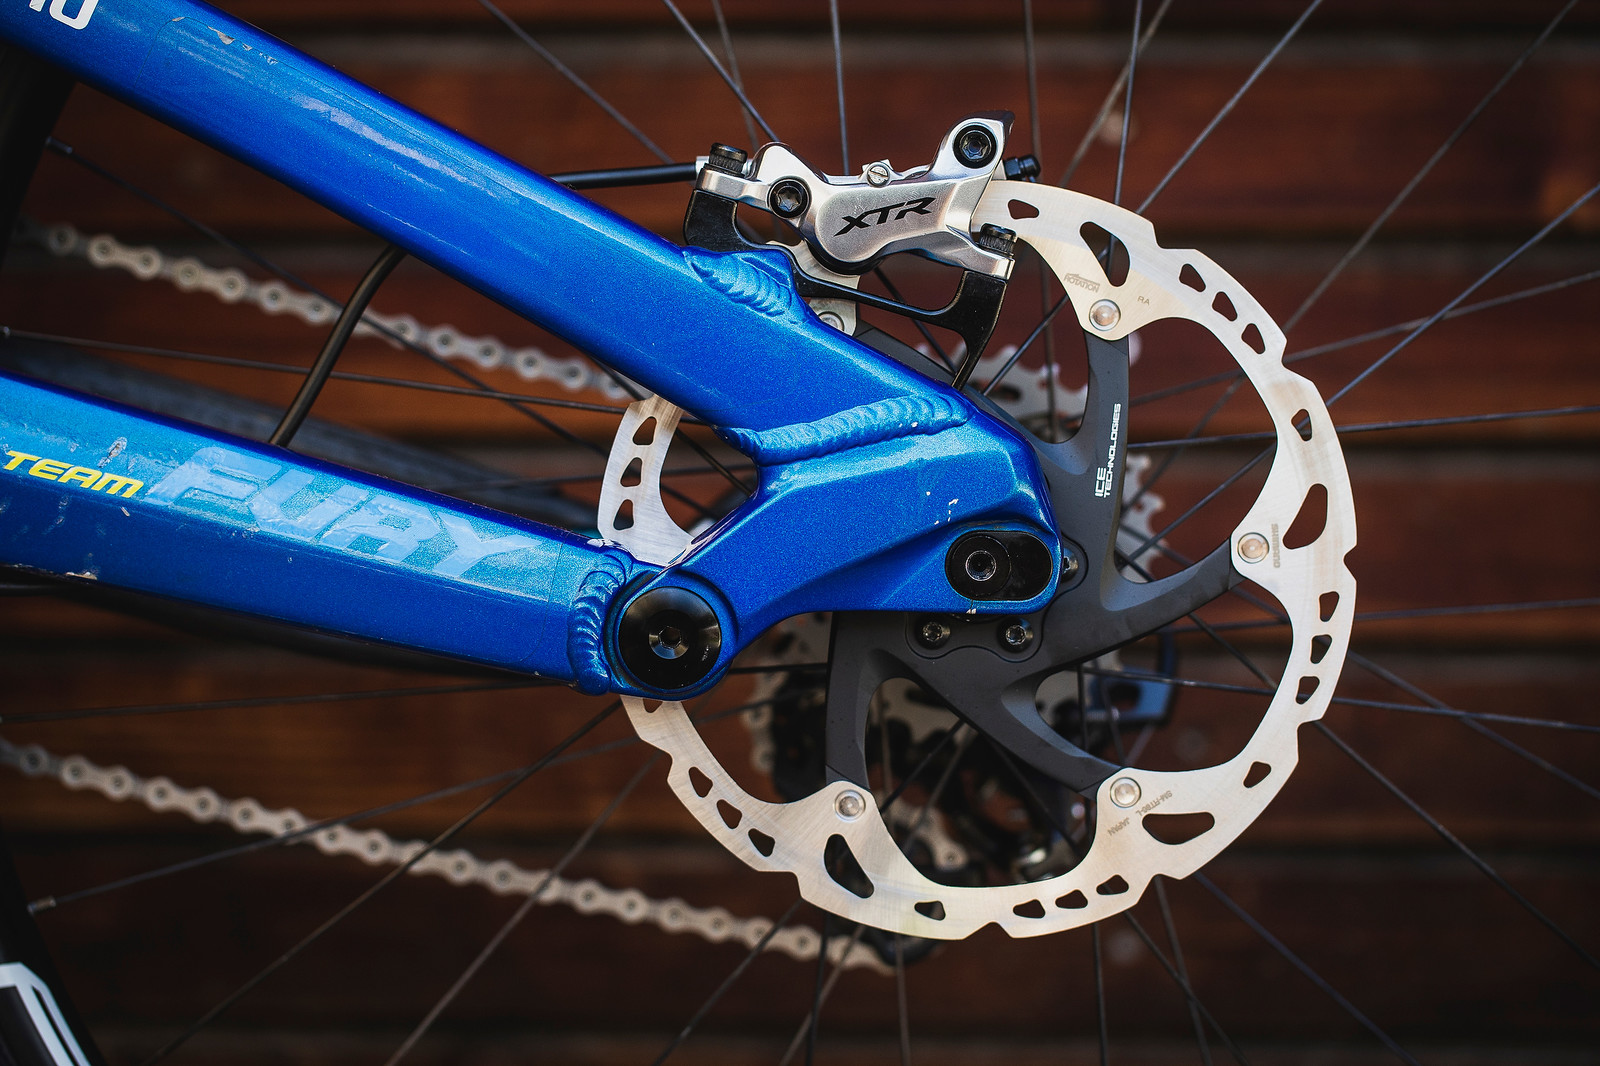 Shimano XTR Brakes / Ice Tech Rotors - Pro Bike Check - George Brannigan's GT Fury - Mountain Biking Pictures - Vital MTB